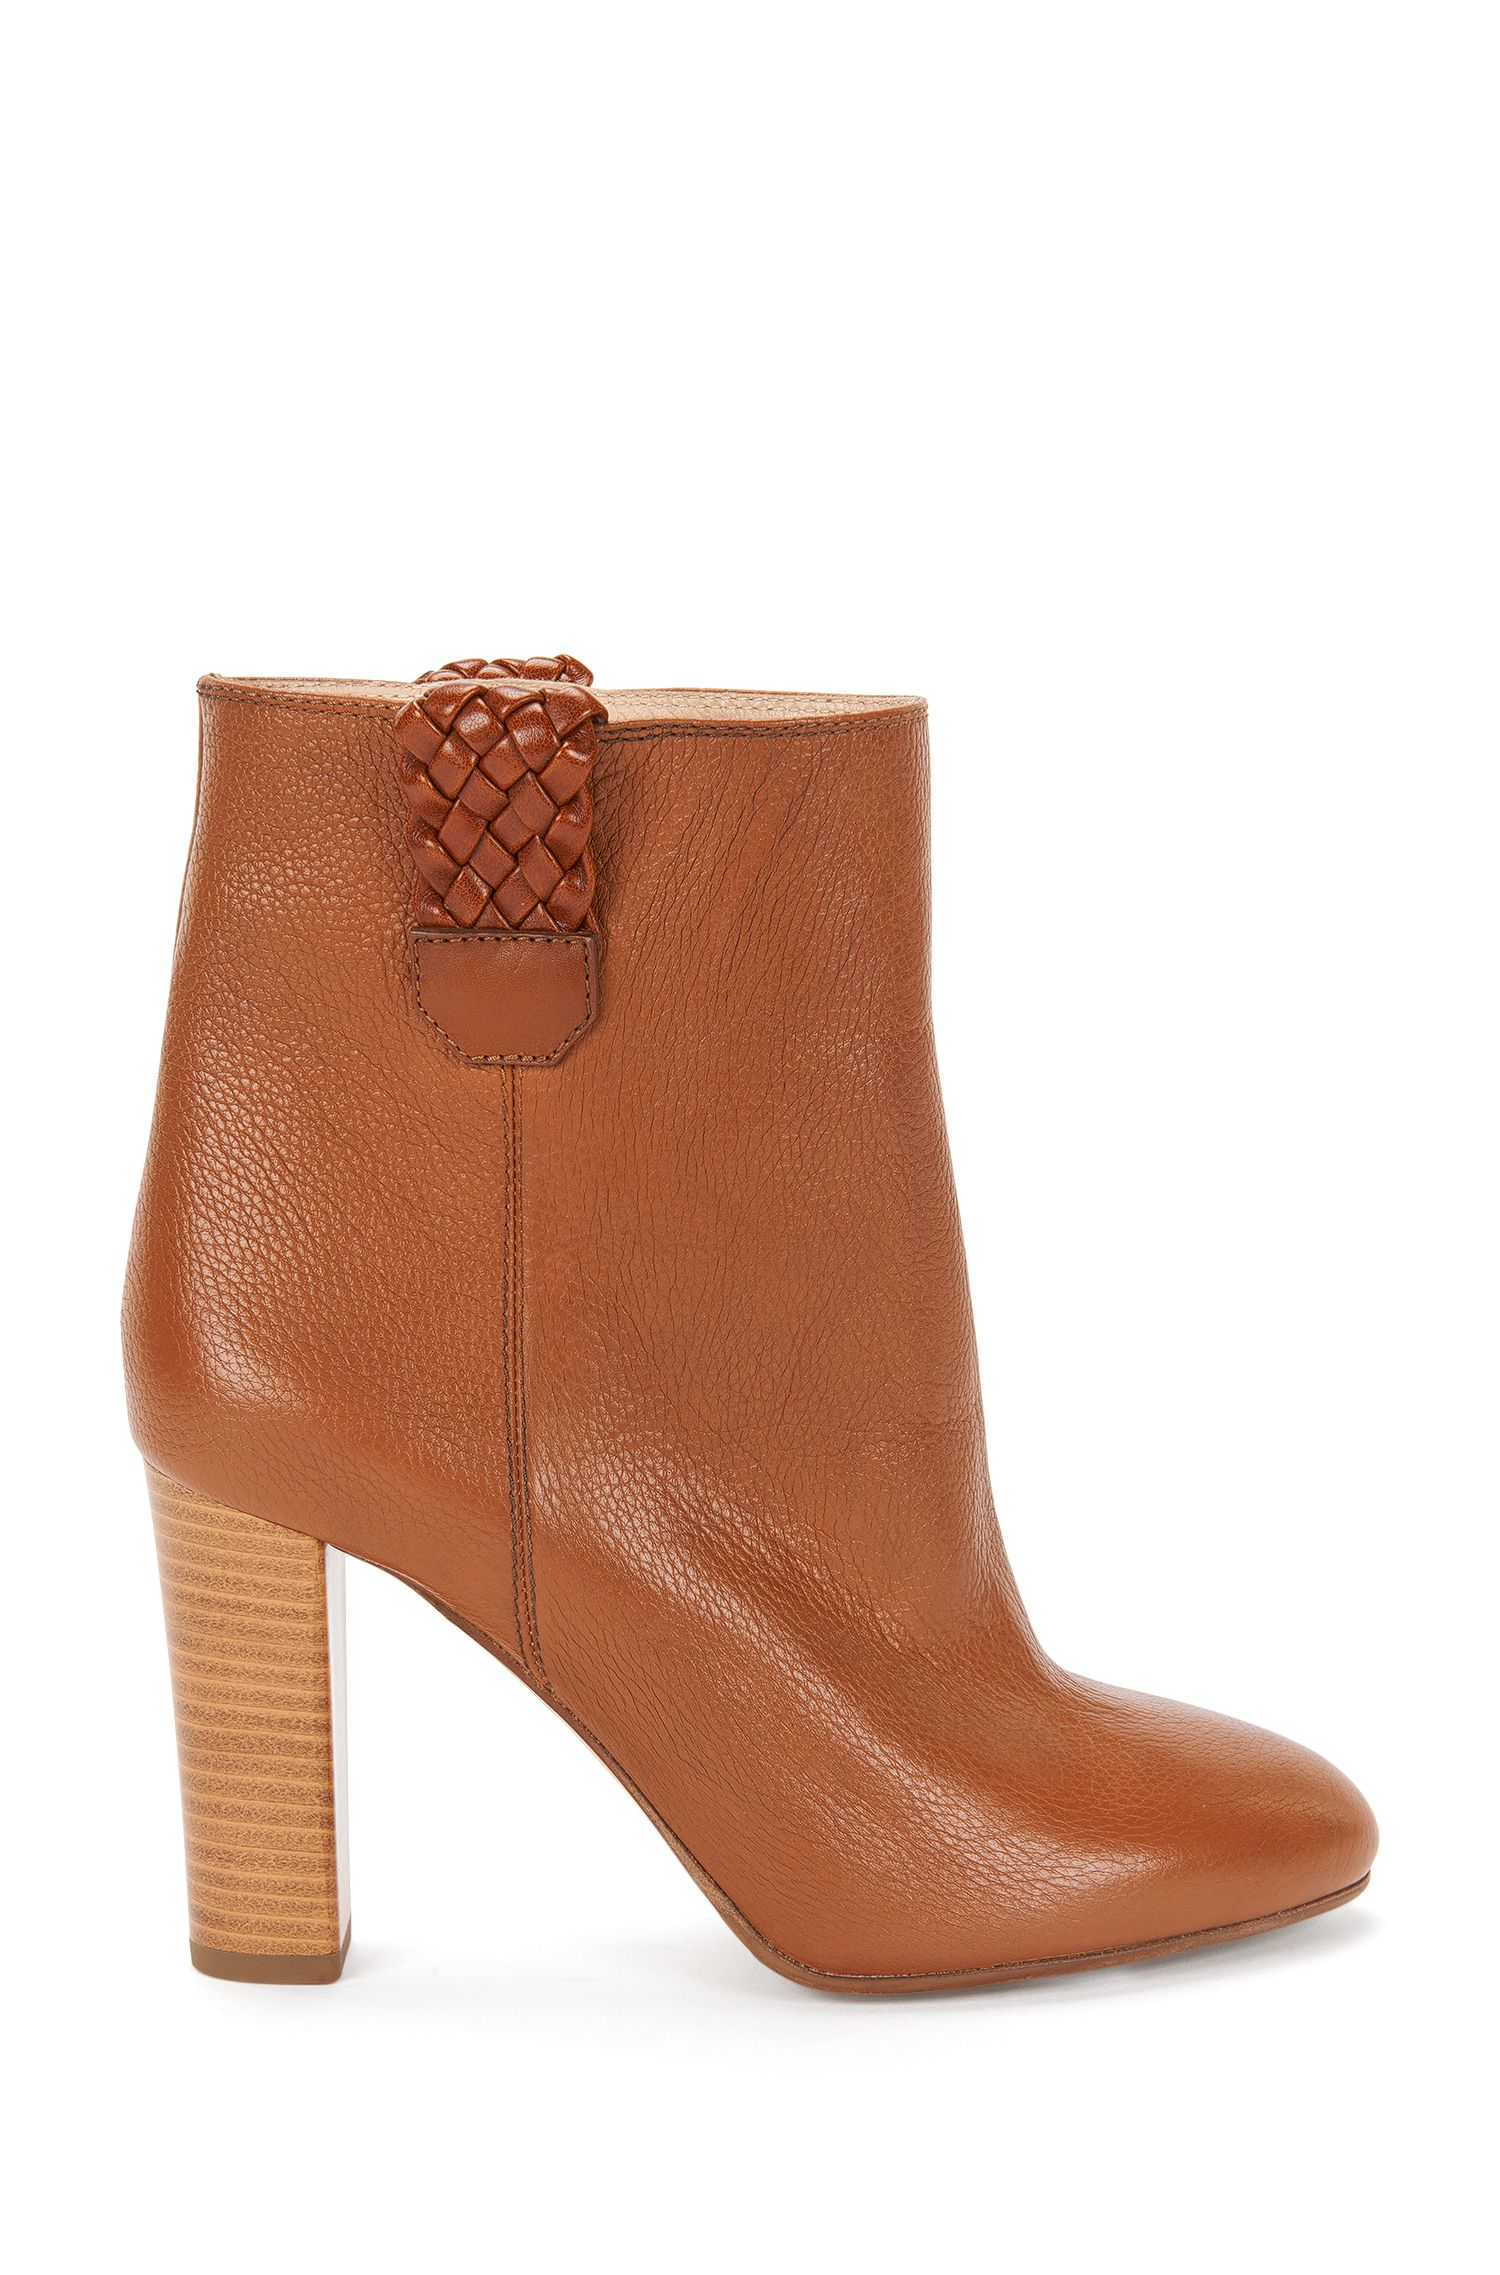 Leather ankle boots with braided details: 'Geller'